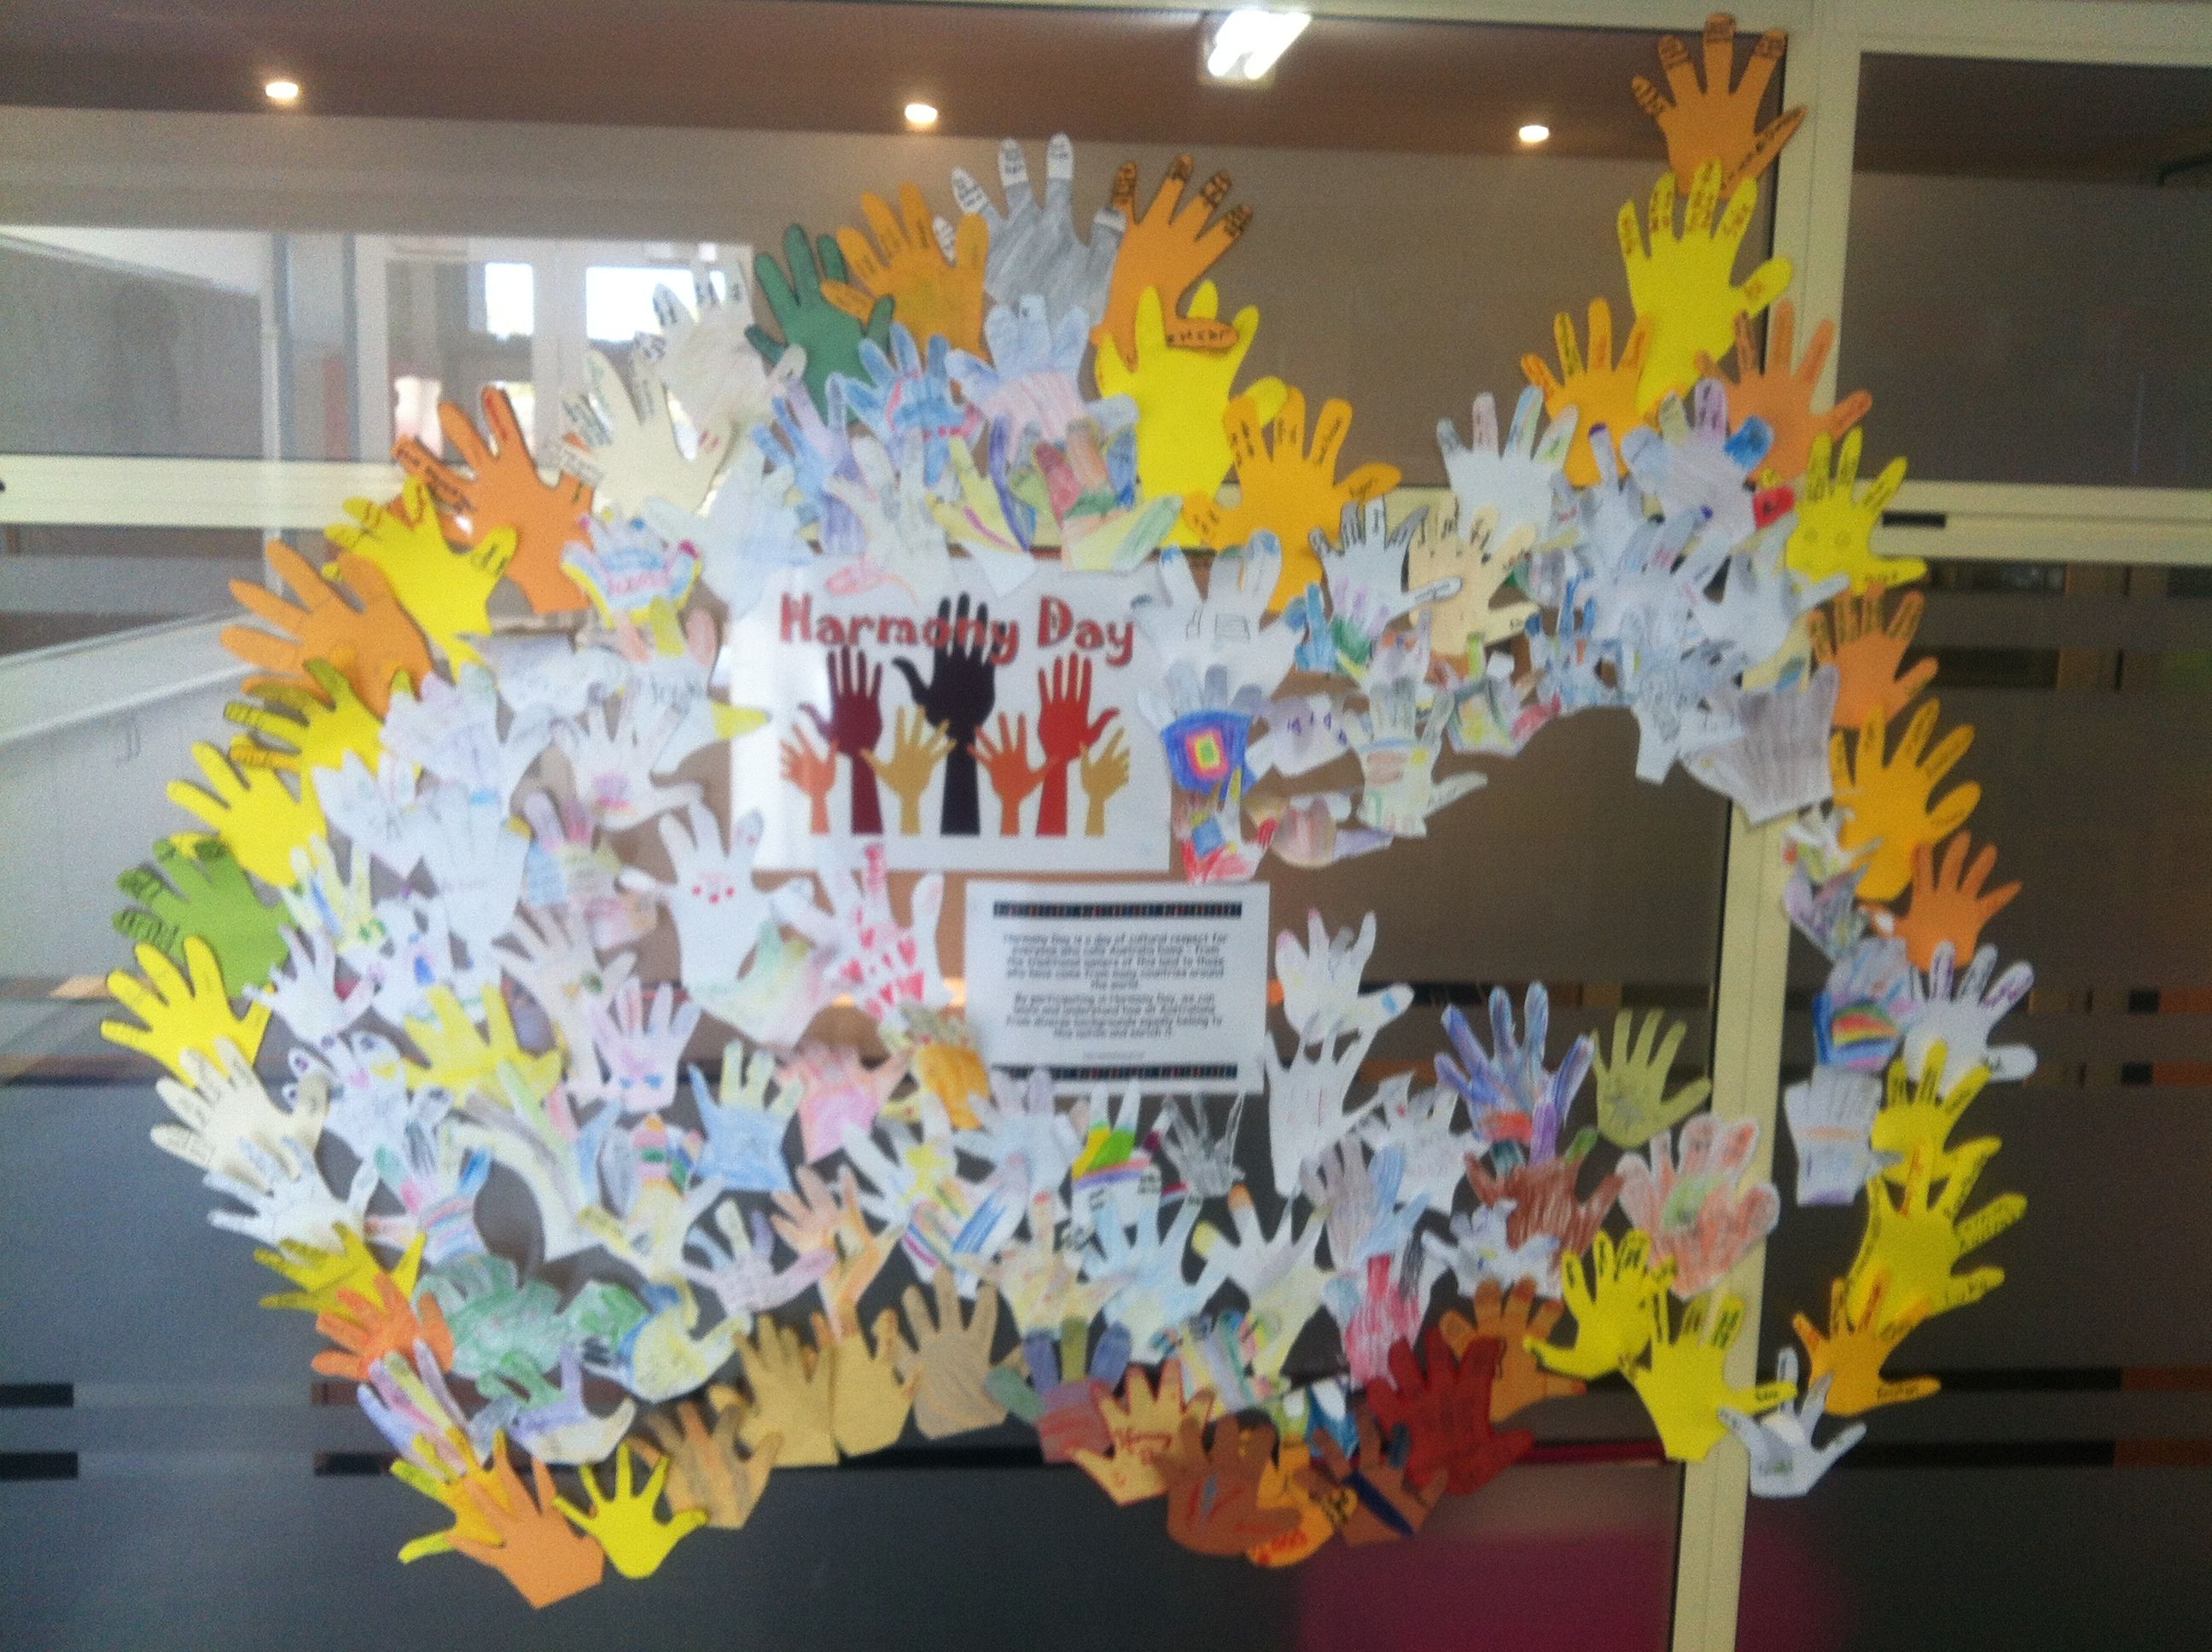 Celebrating Harmony Day In Australia With Cut Out Of The Children S Hand Each Finger Has